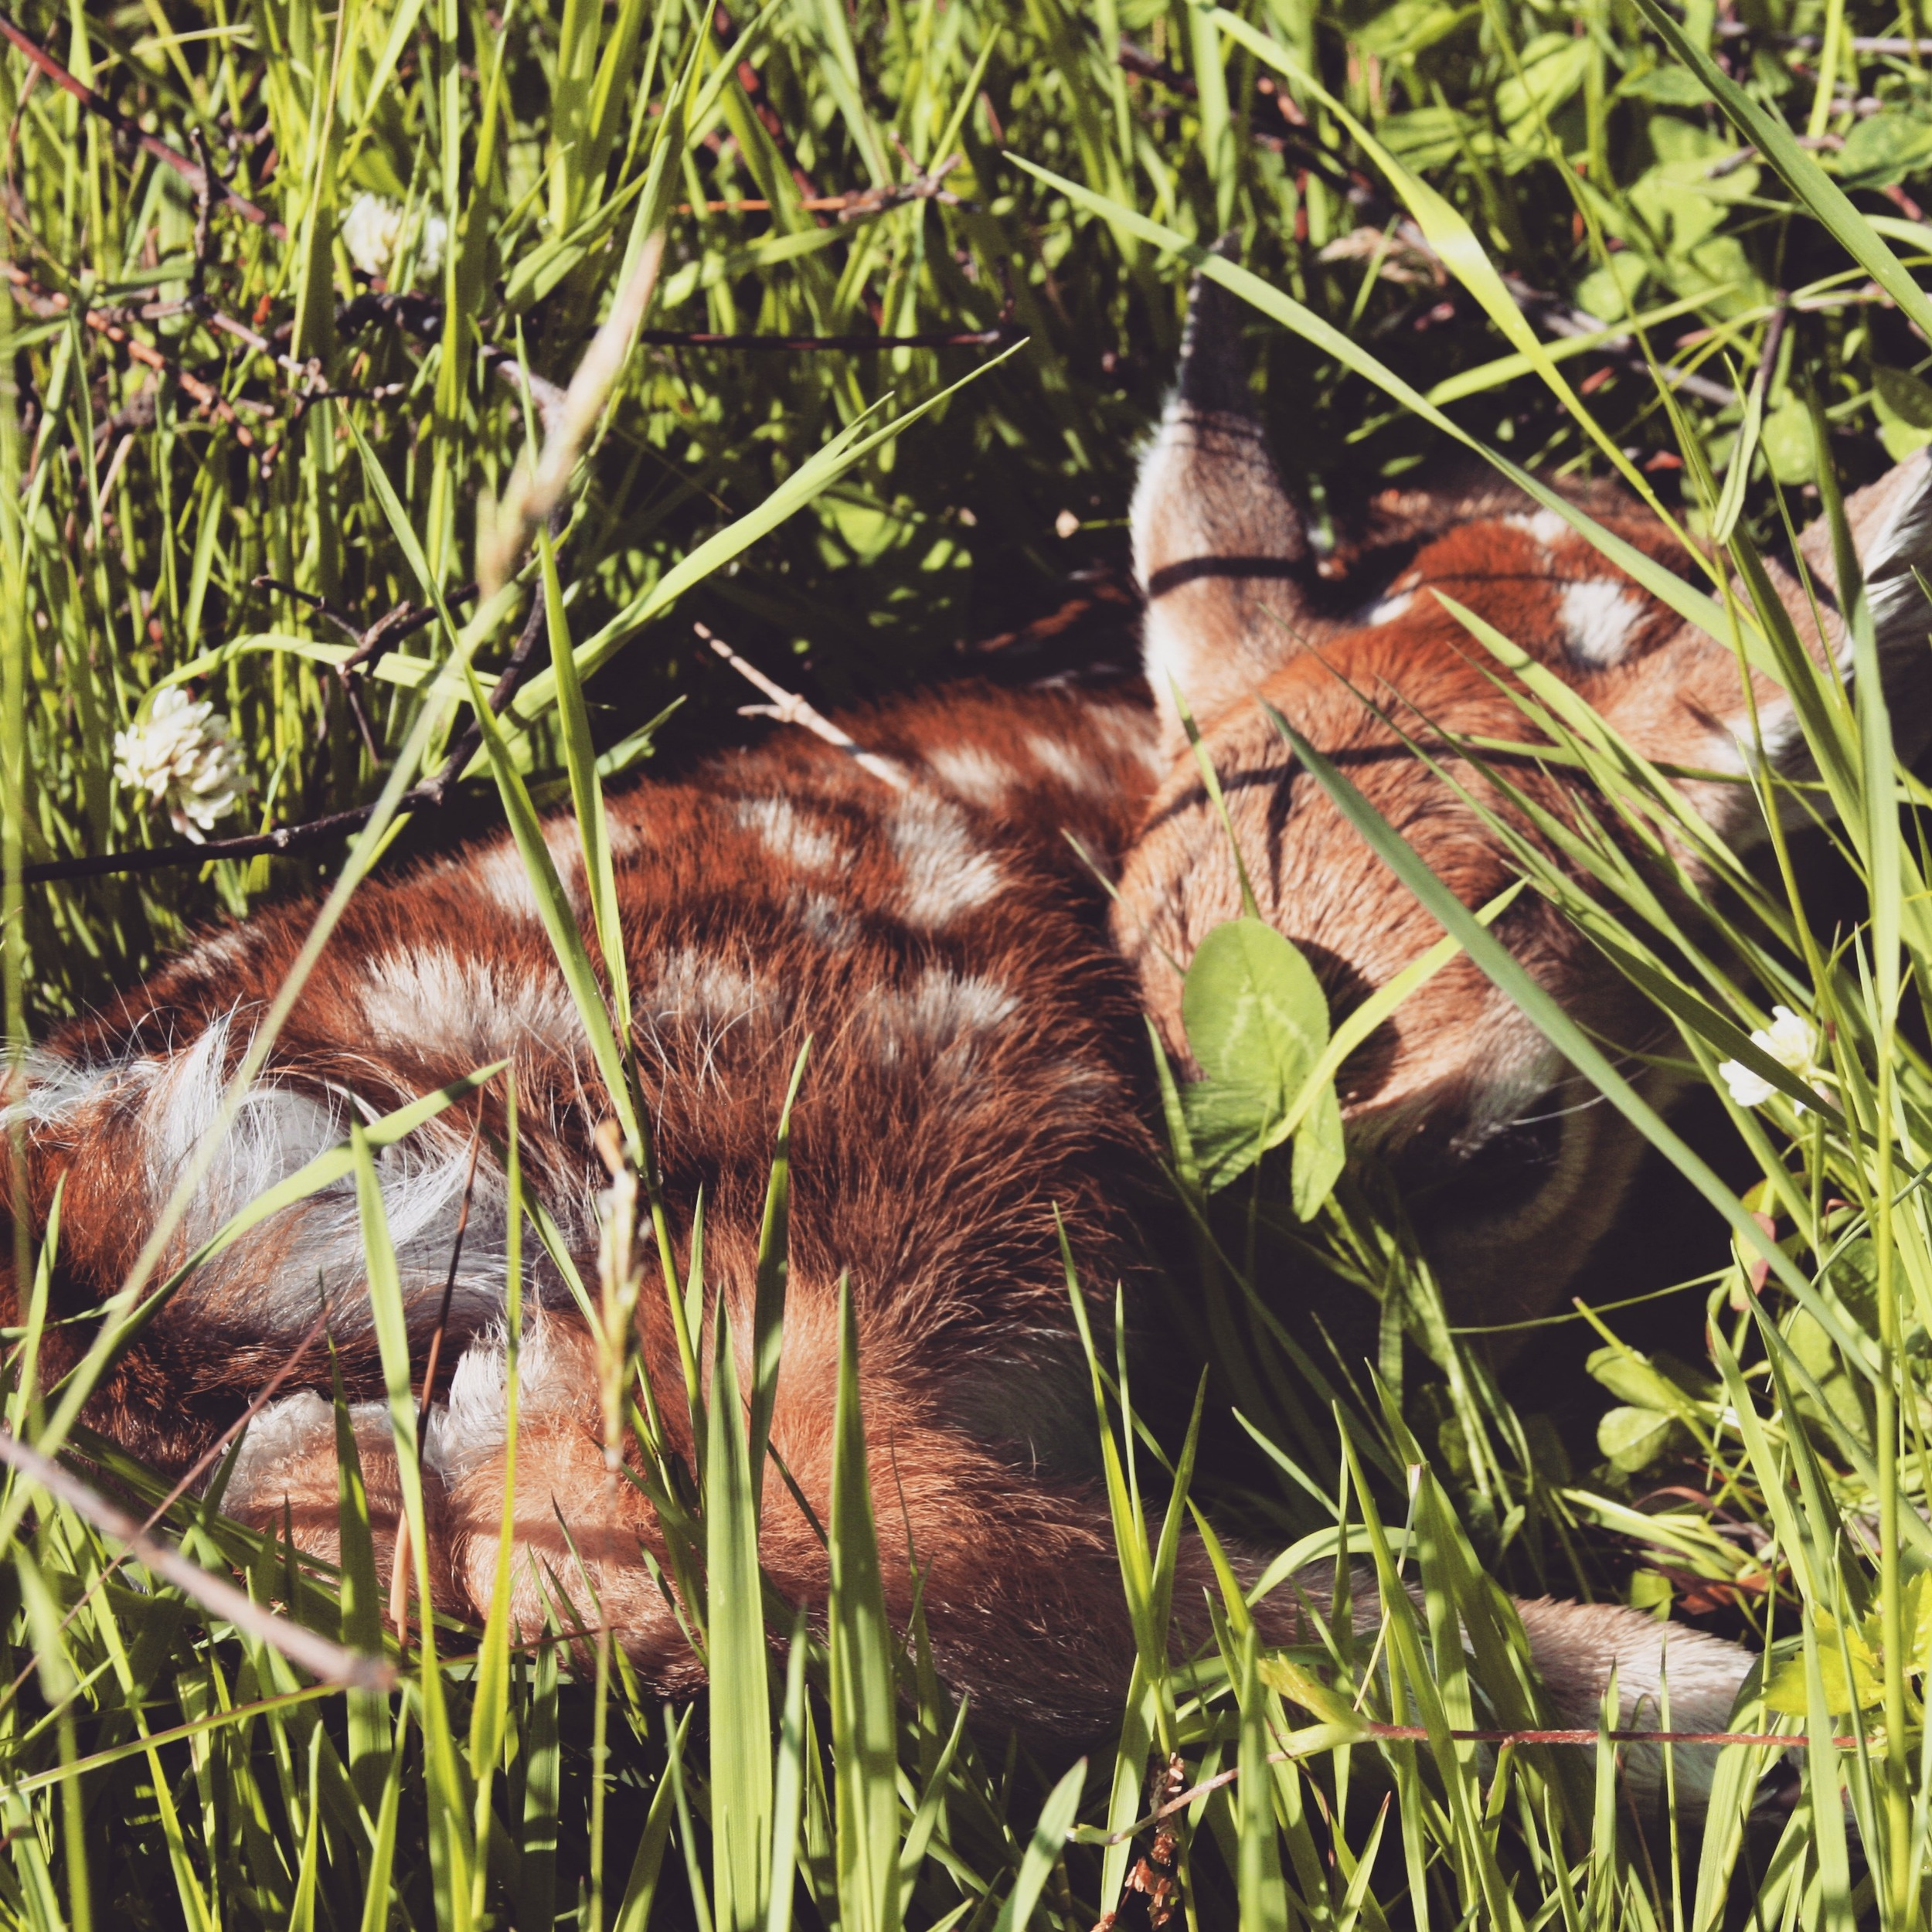 baby deer resting in farm field.jpg